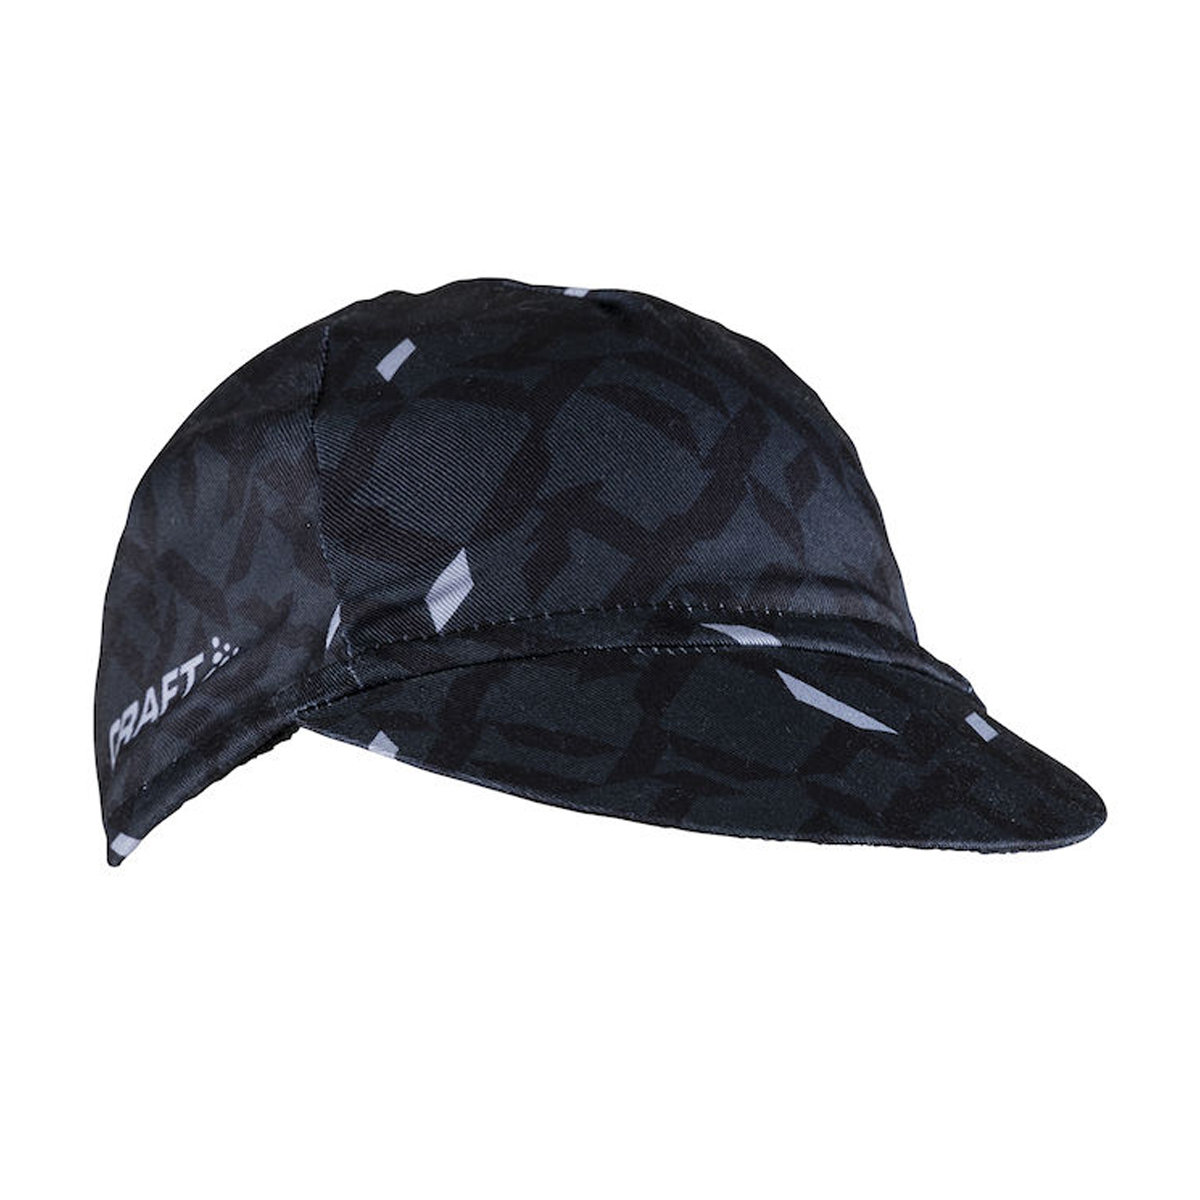 Кепка Craft Race Bike Cap crest/black